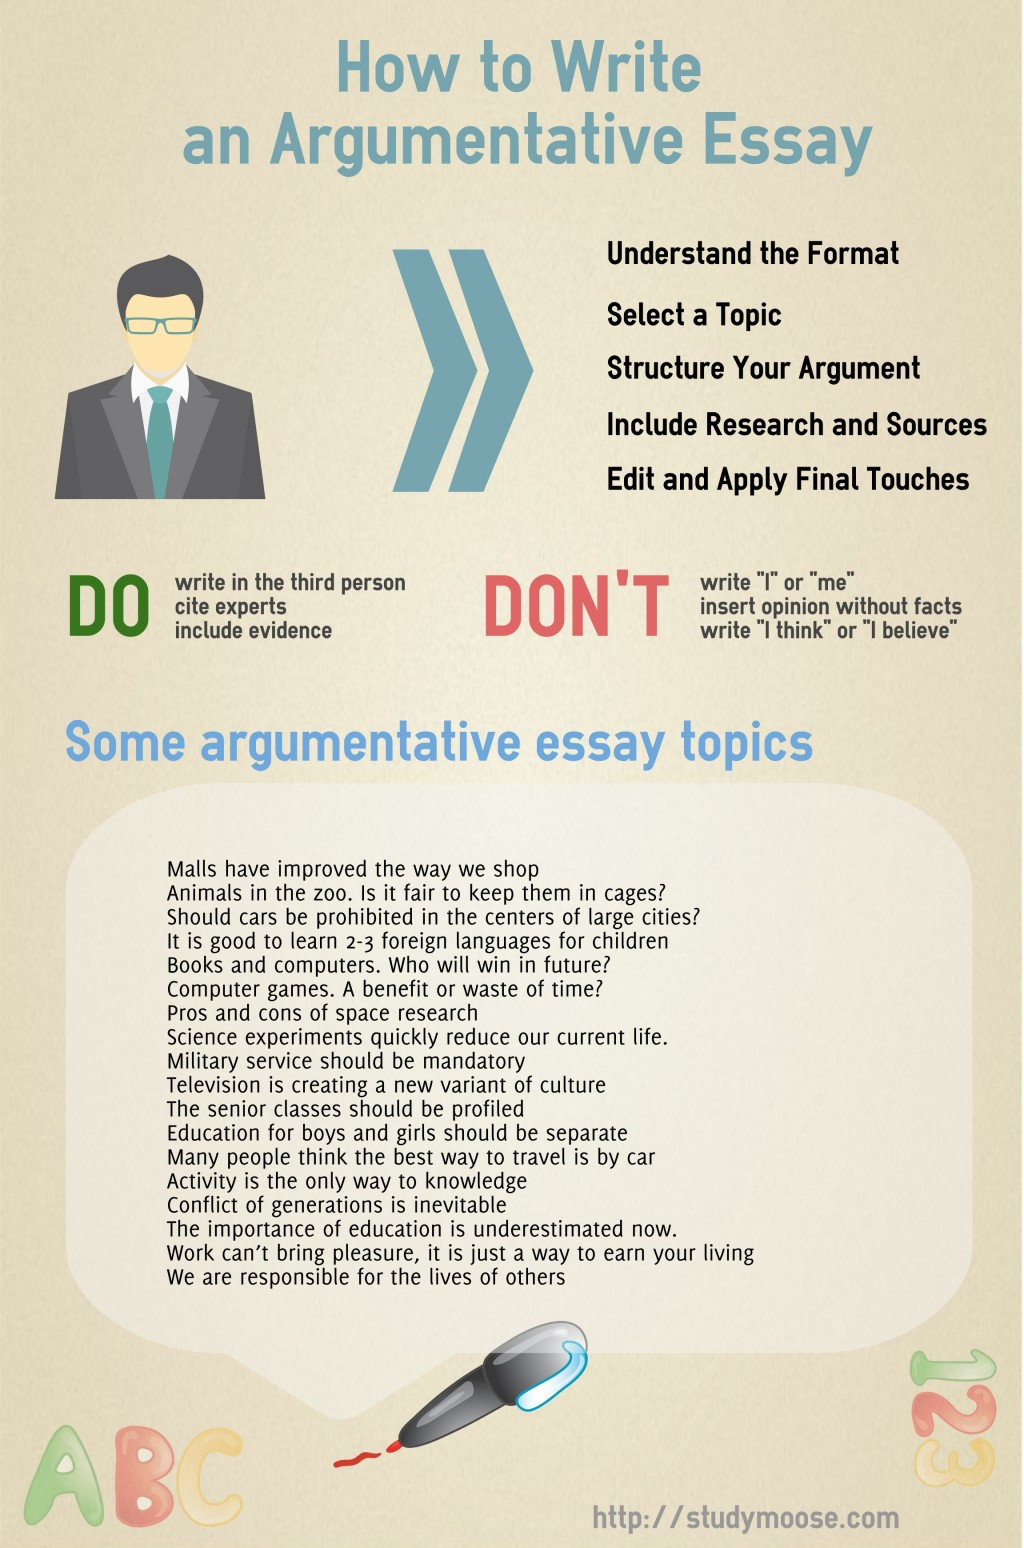 007 Essay Example How To Write An Argumentative Argument Astounding Topics Gre For High Schoolers New York Times Large